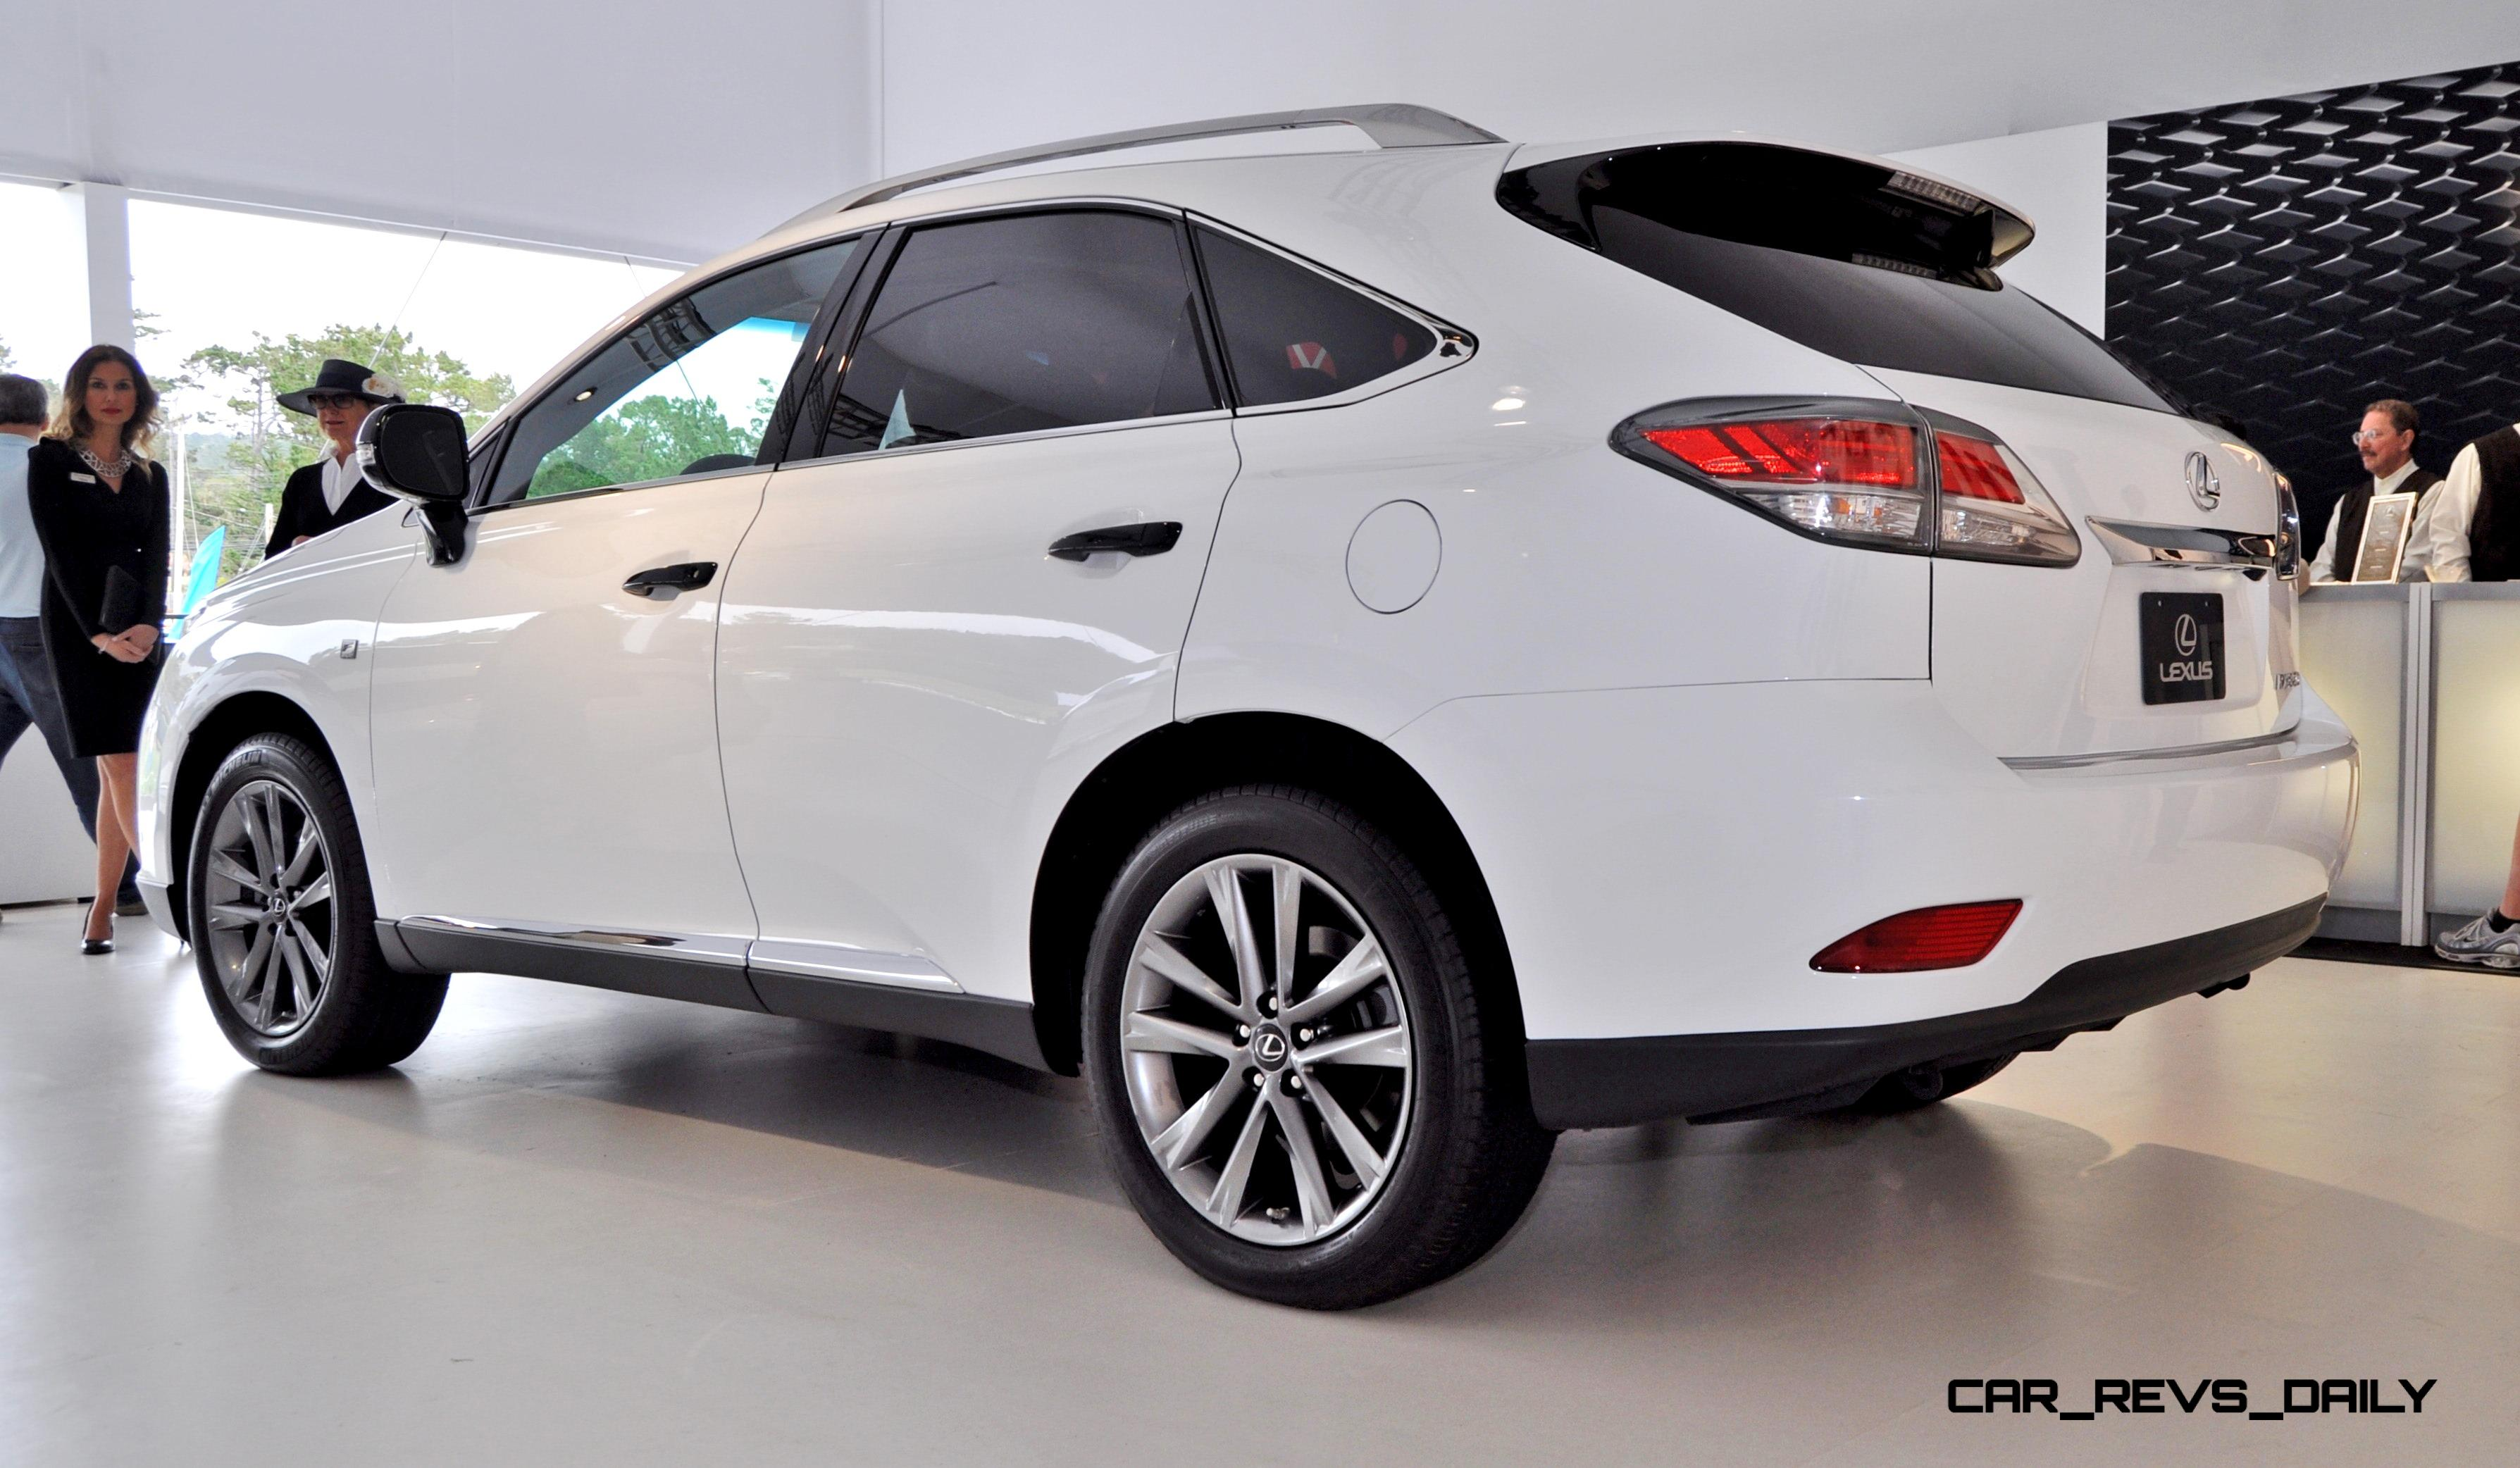 rx lexus new black silver alberta canada package watch technology review awd on